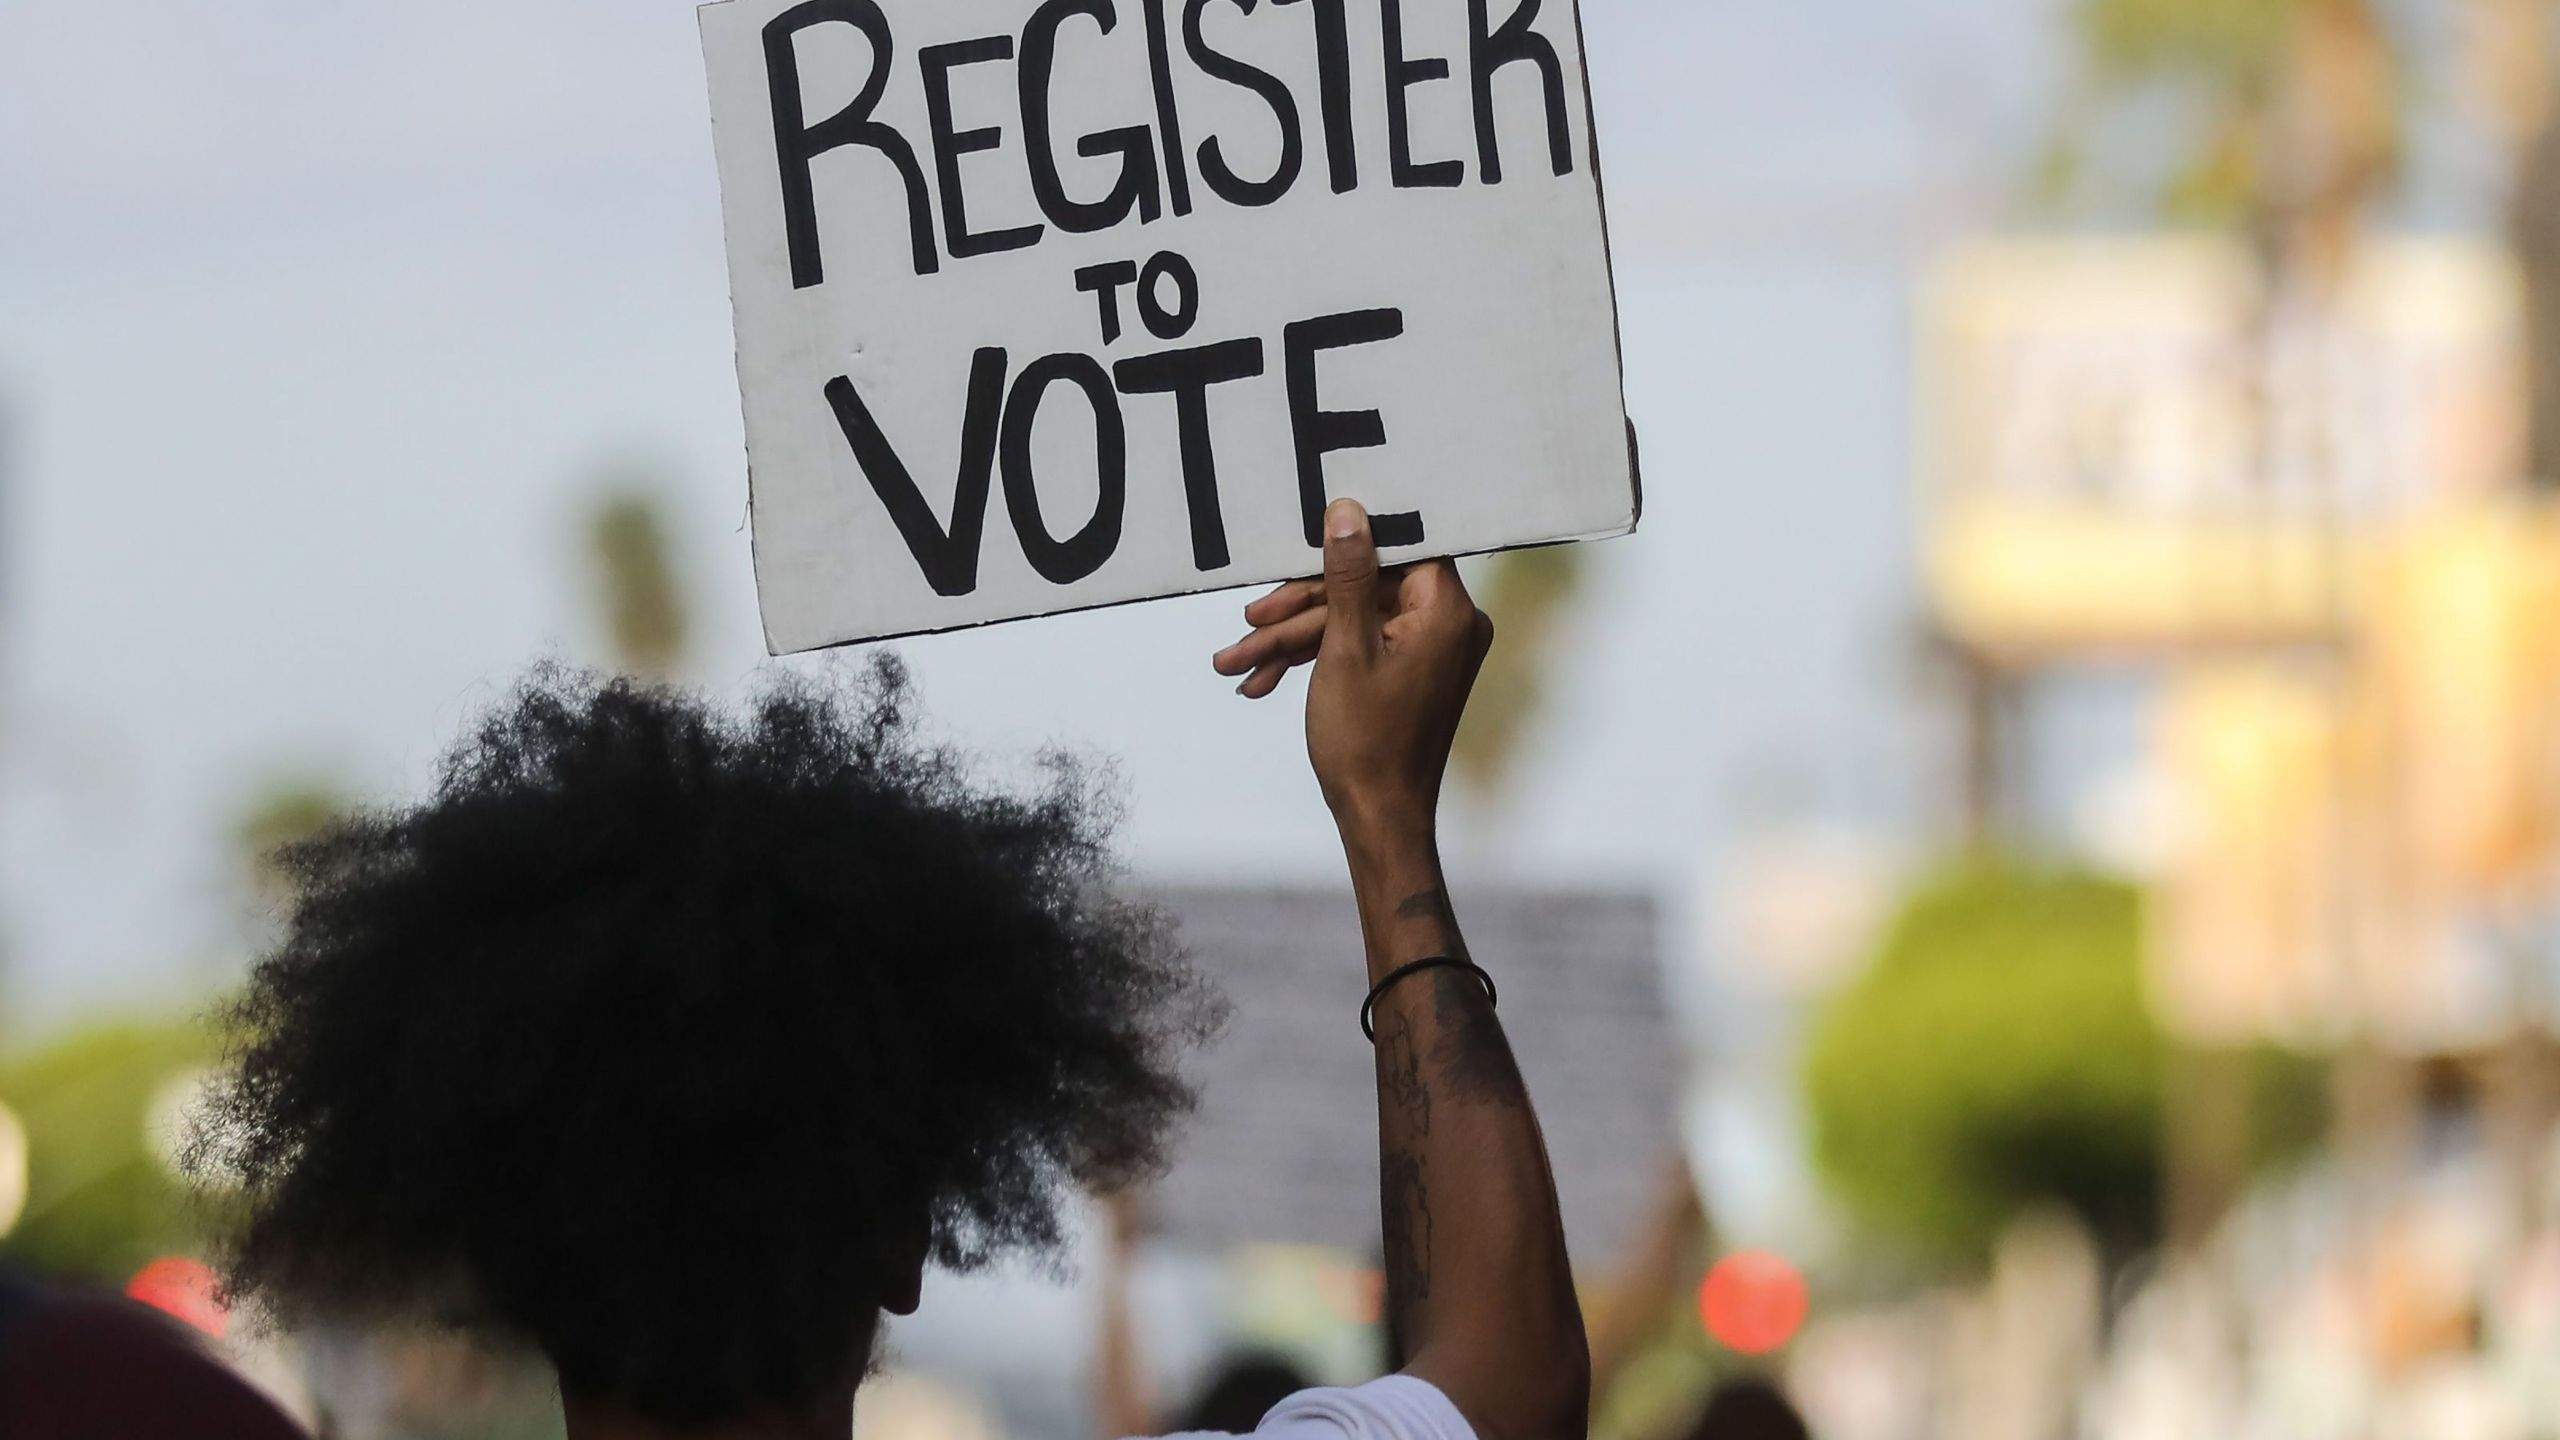 """A man carries a """"register to vote"""" sign during a demonstration on June 6, 2020 in Los Angeles. (Mario Tama/Getty Images)"""